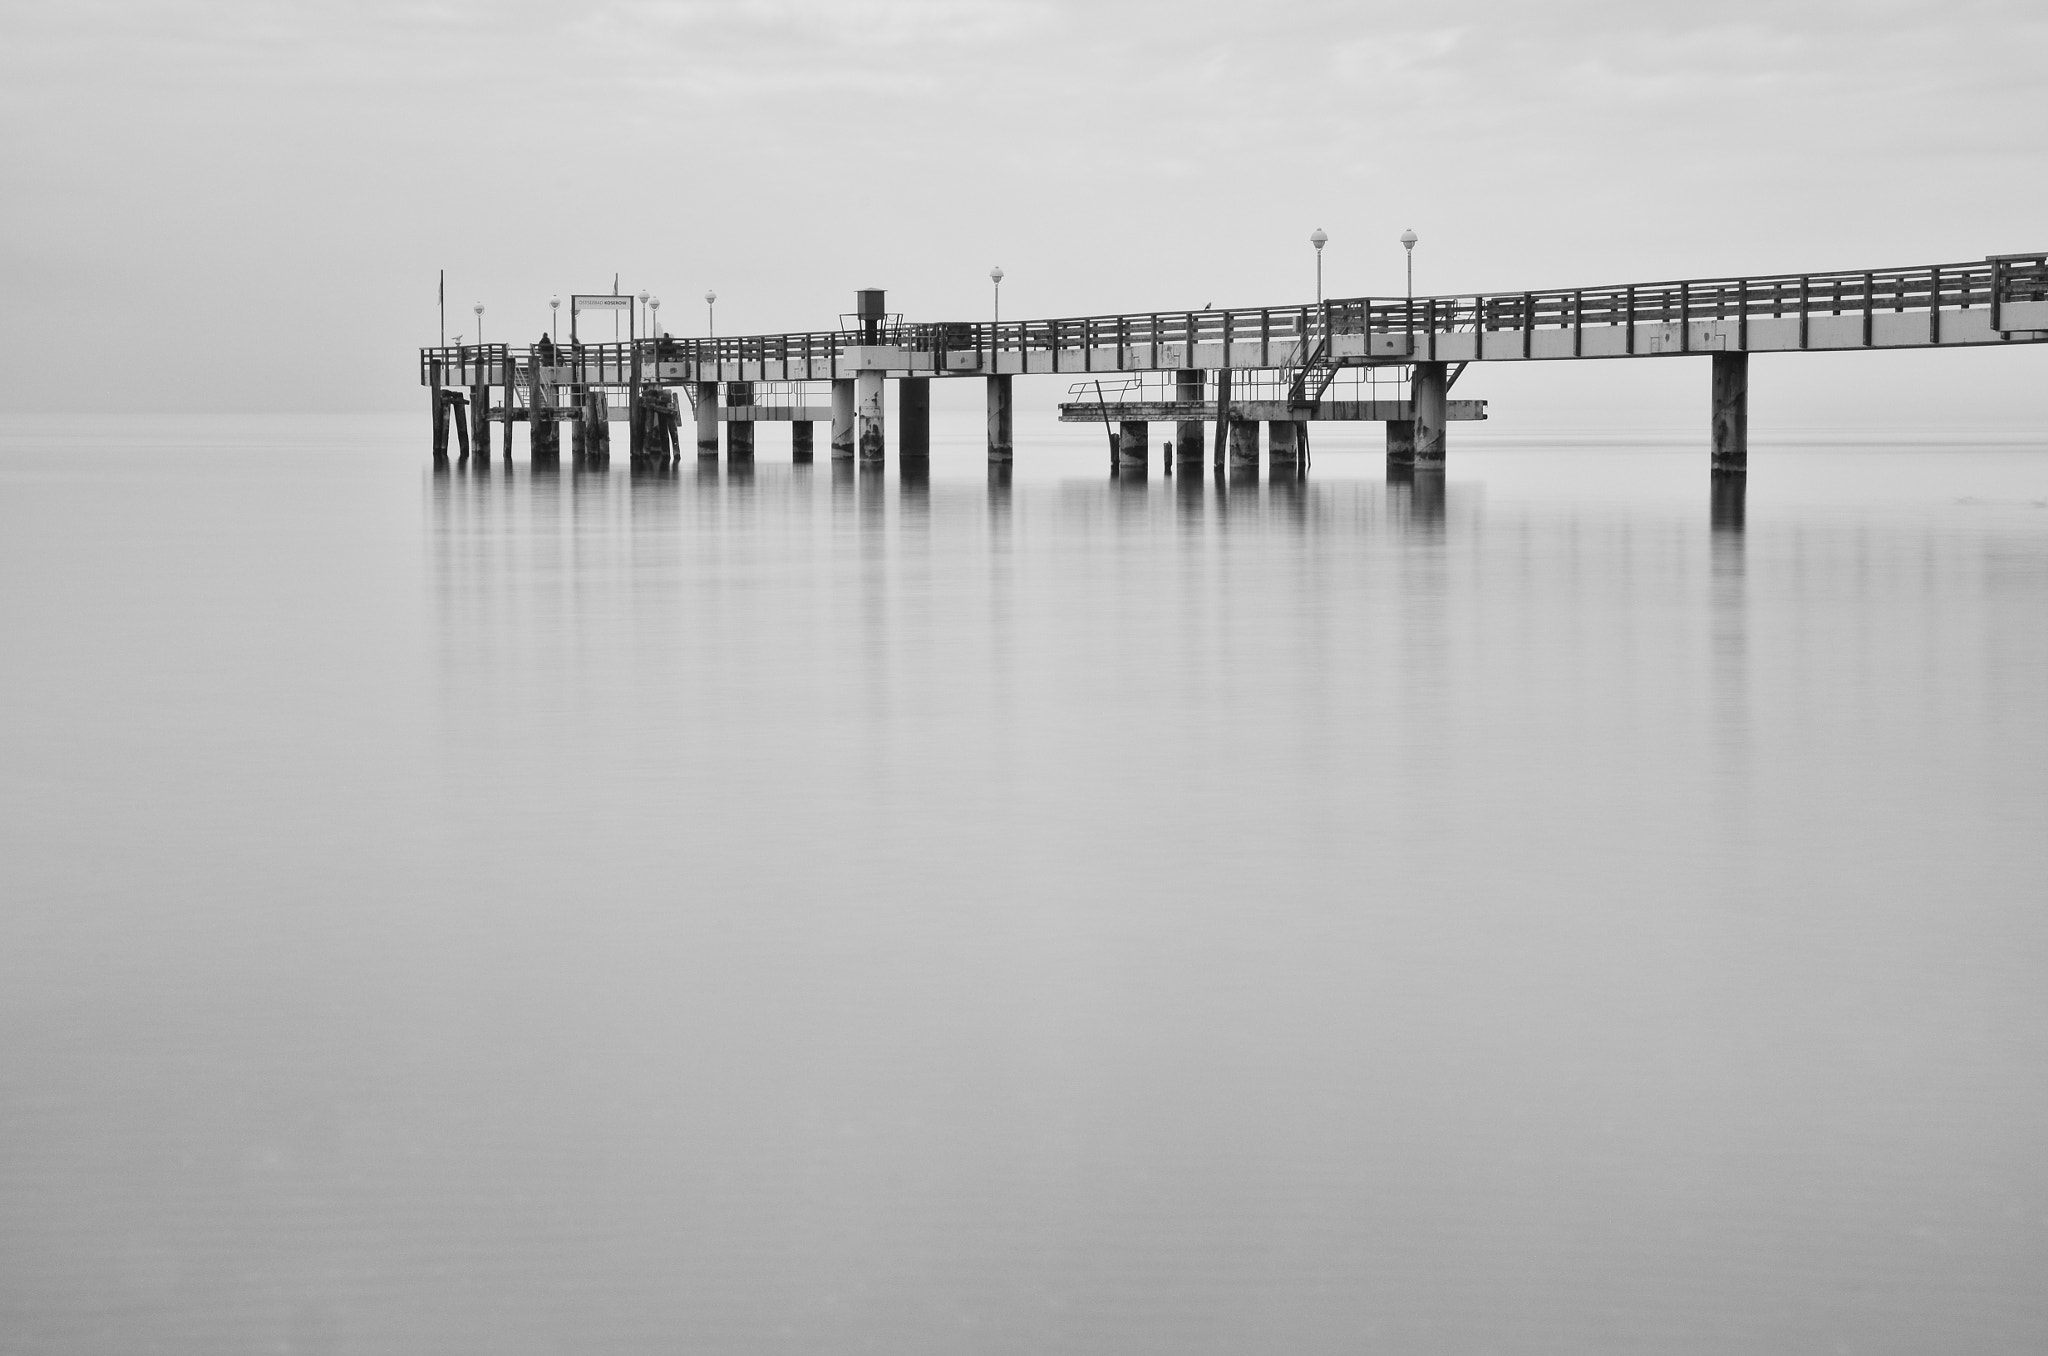 Photograph Seaside resort by Jan Hausding on 500px